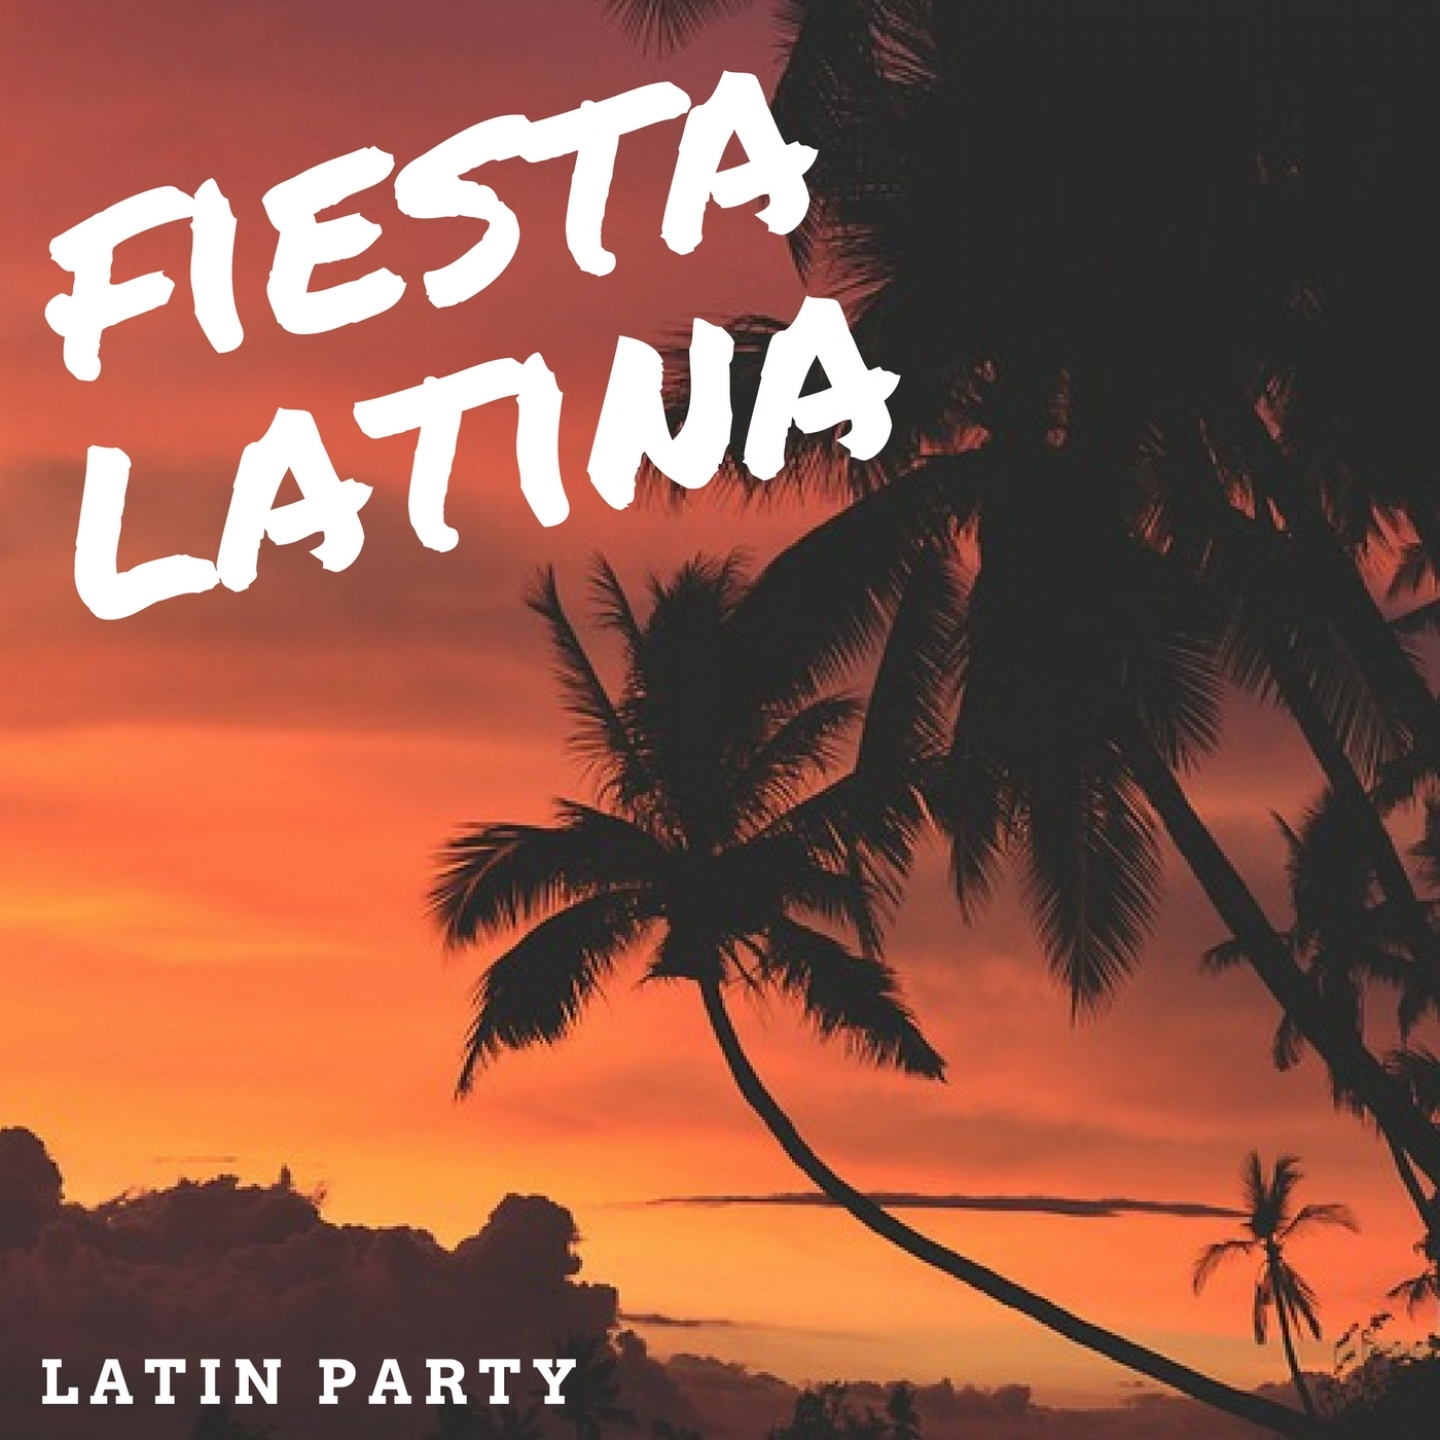 Fiesta Latina - Latin Party